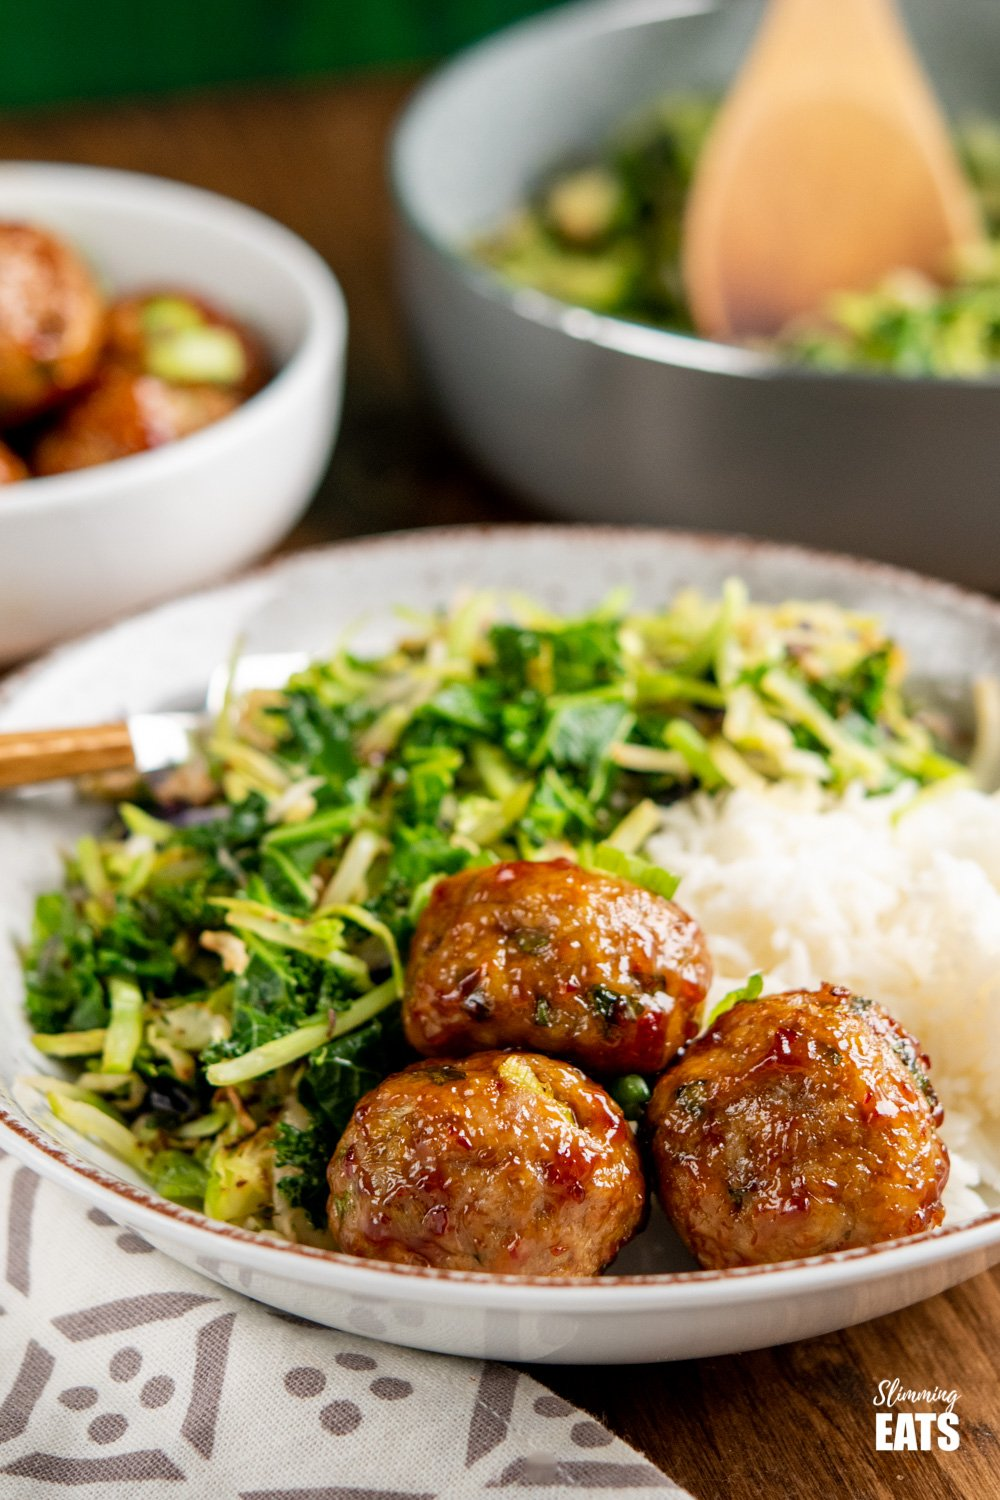 Sweet Chilli Chicken Meatballs with rice and veggies in bowl